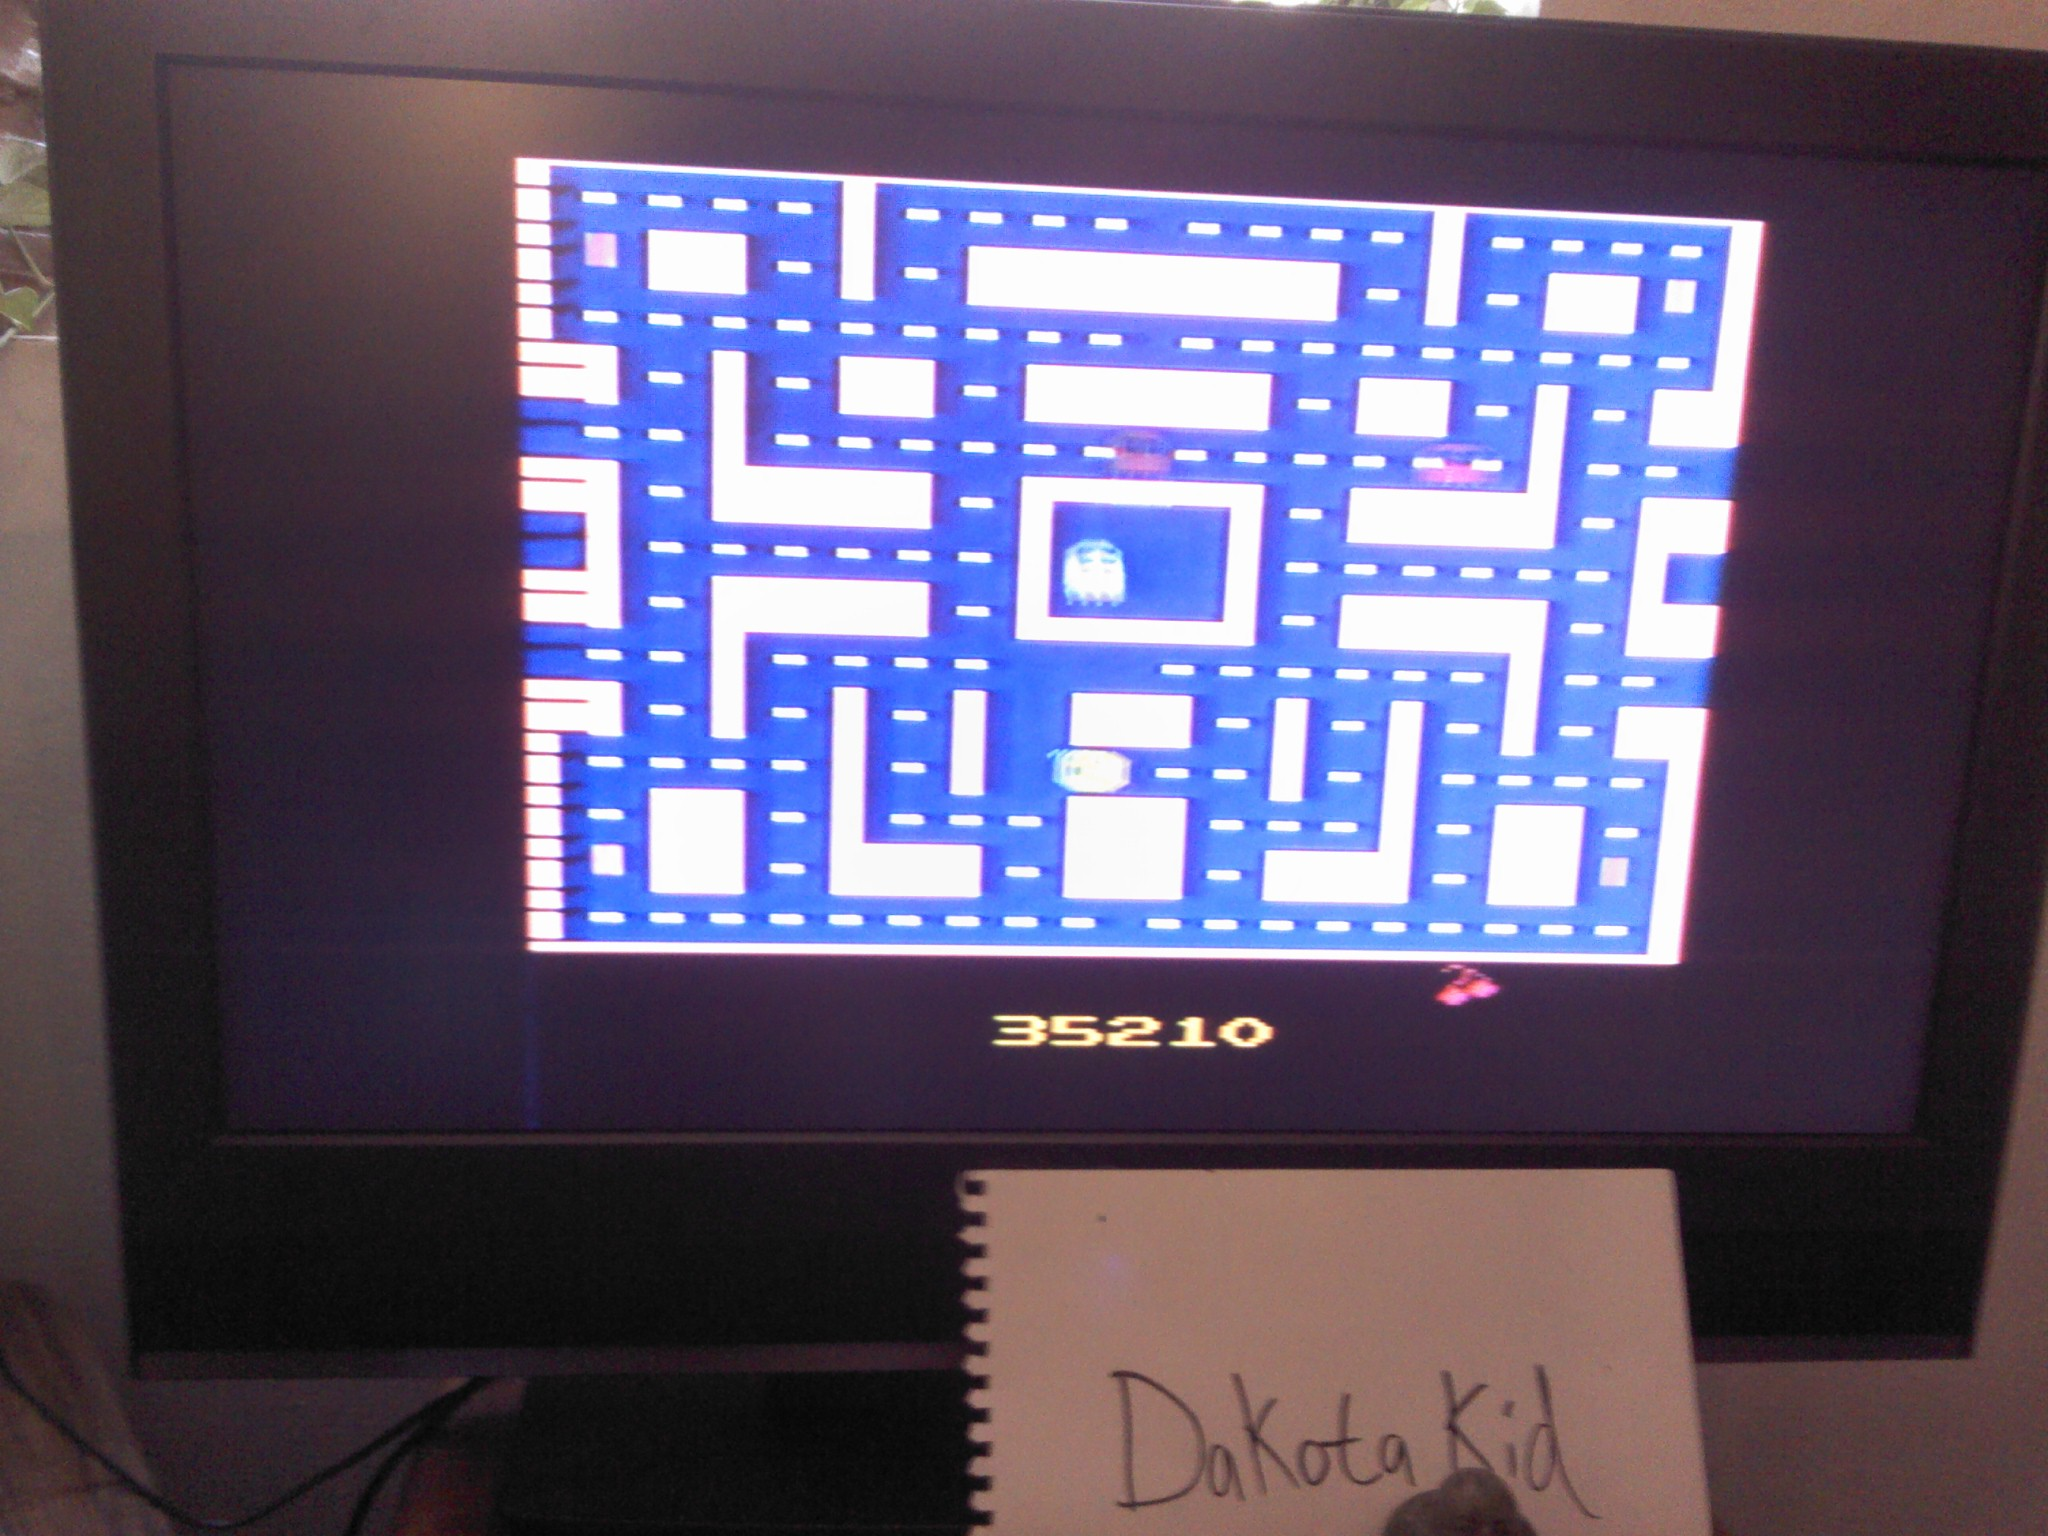 Ms. Pac-Man 35,210 points